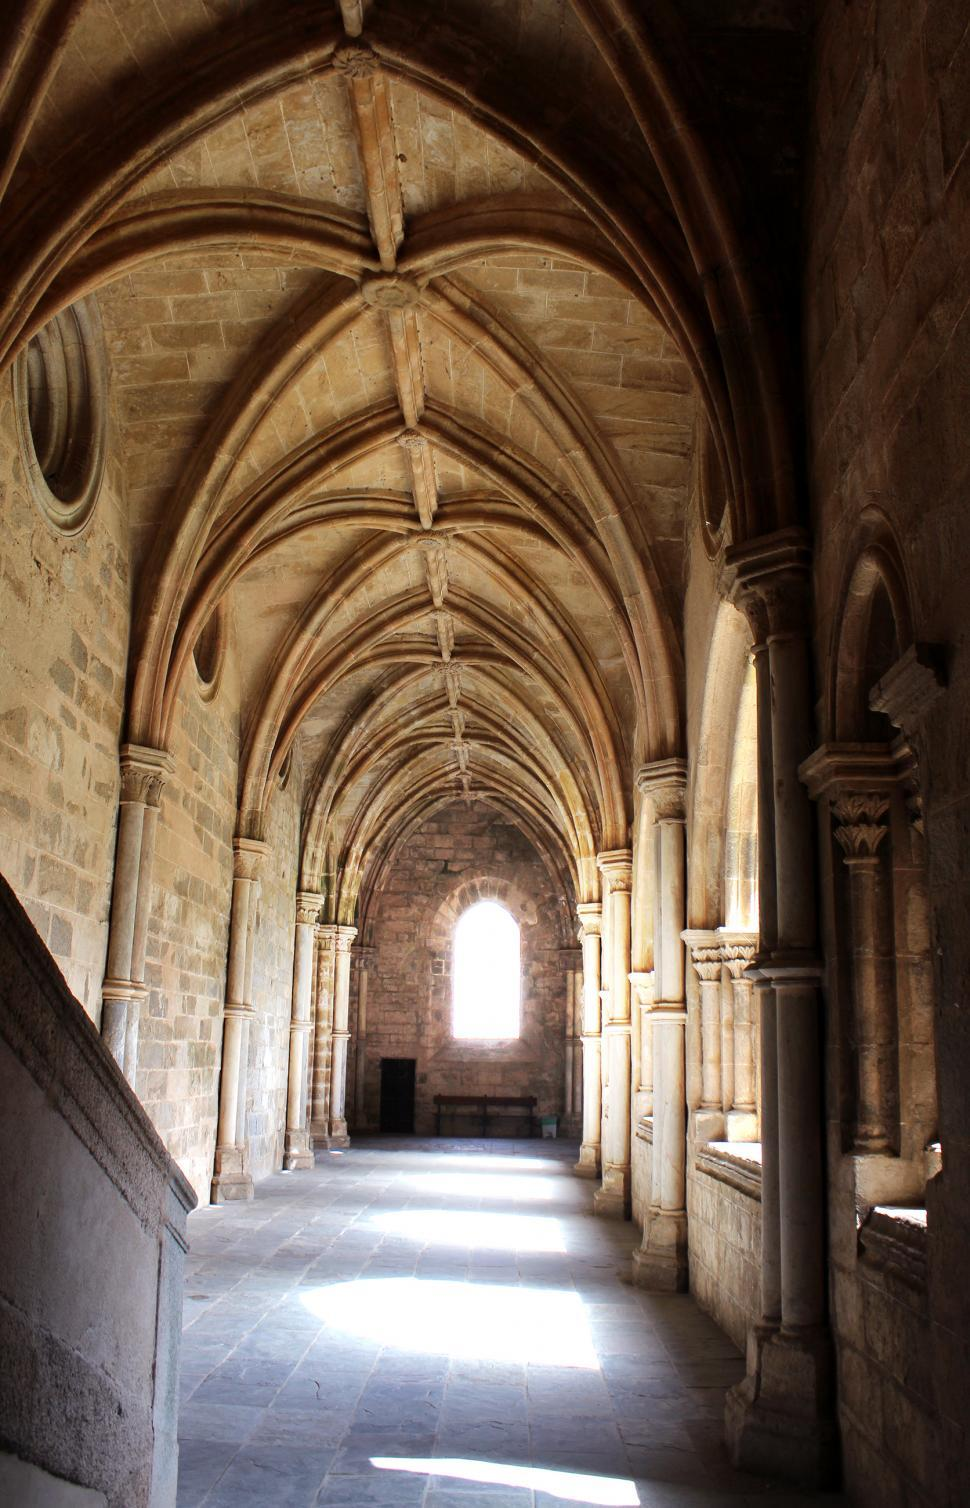 Download Free Stock Photo of Cathedral of Evora - Ogival Arches - Cloisters - Gothic Architec